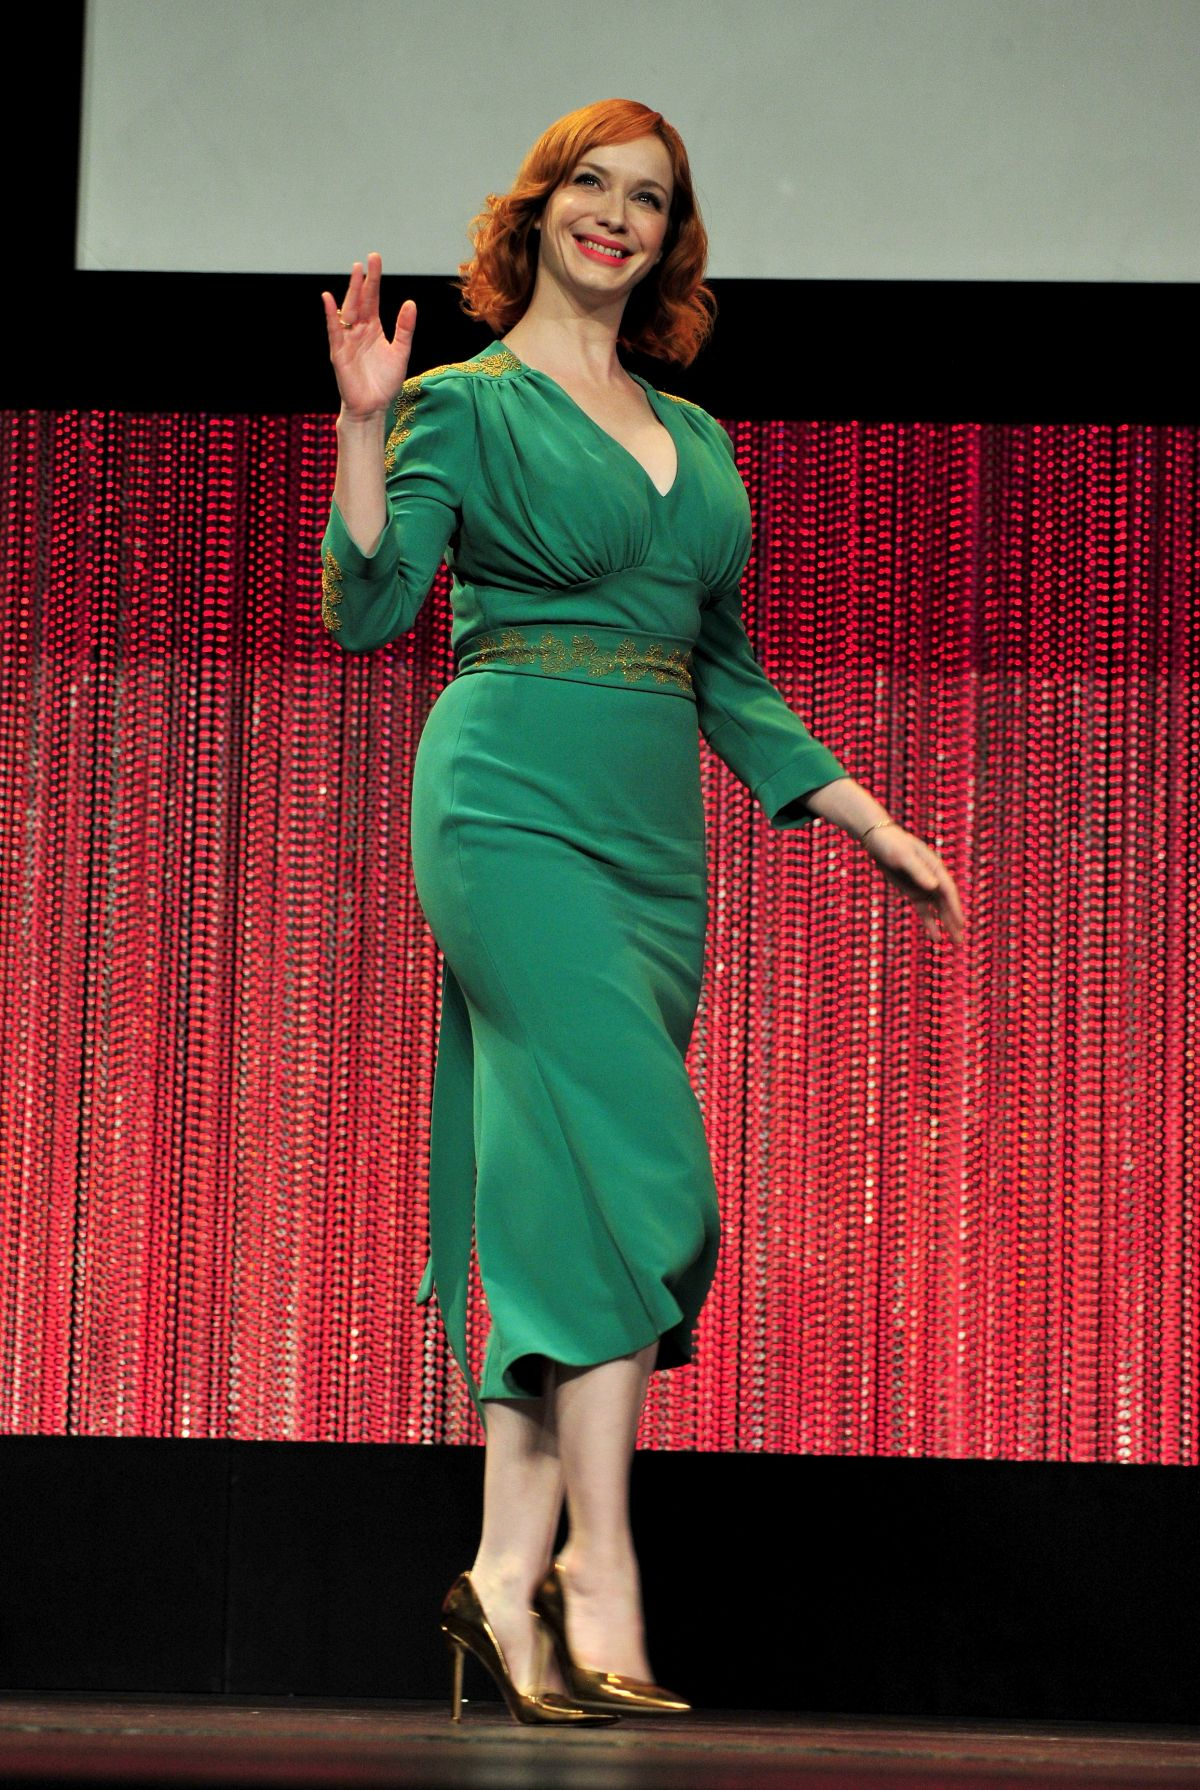 image Christina hendricks mad men